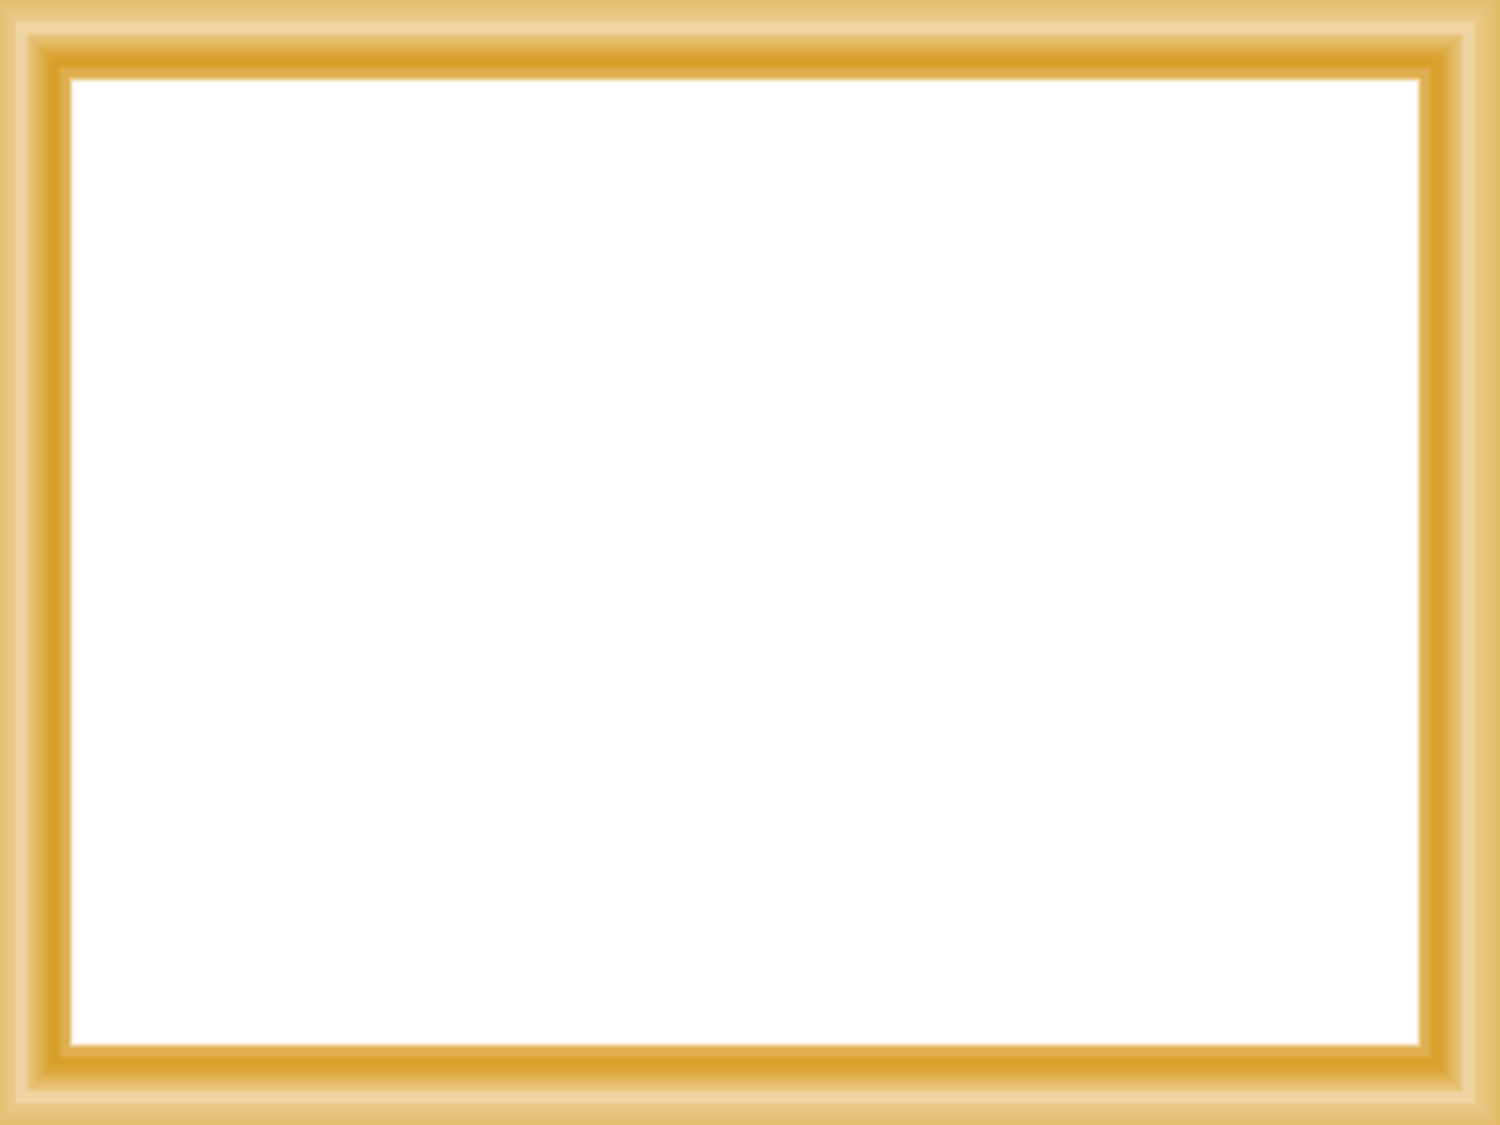 9 psd gold border template free images borders photoshop psd free download picture frame for Border psd